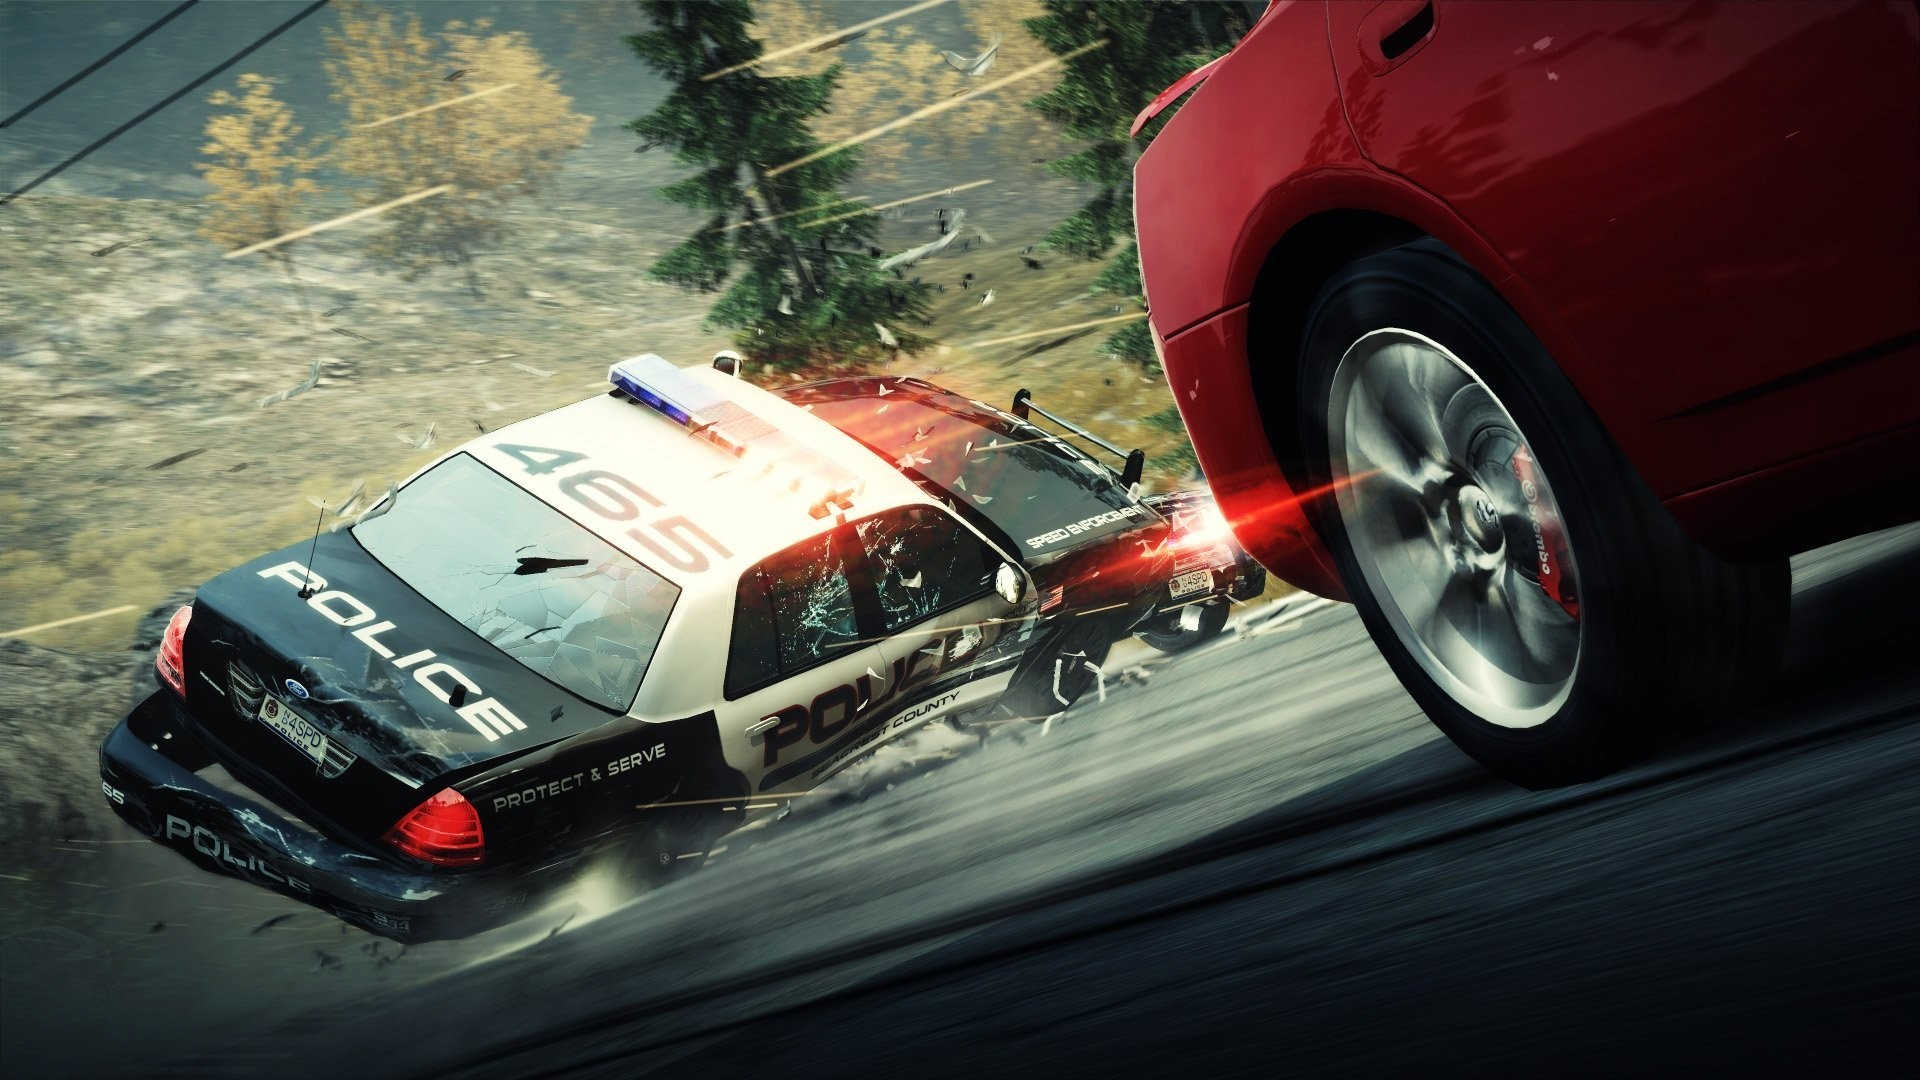 Res: 1920x1080, Awesome Need For Speed Police Car Wallpaper Full Hd Pics Widescreen Video  Games Hot Pursuit Cars Of Mobile Phones